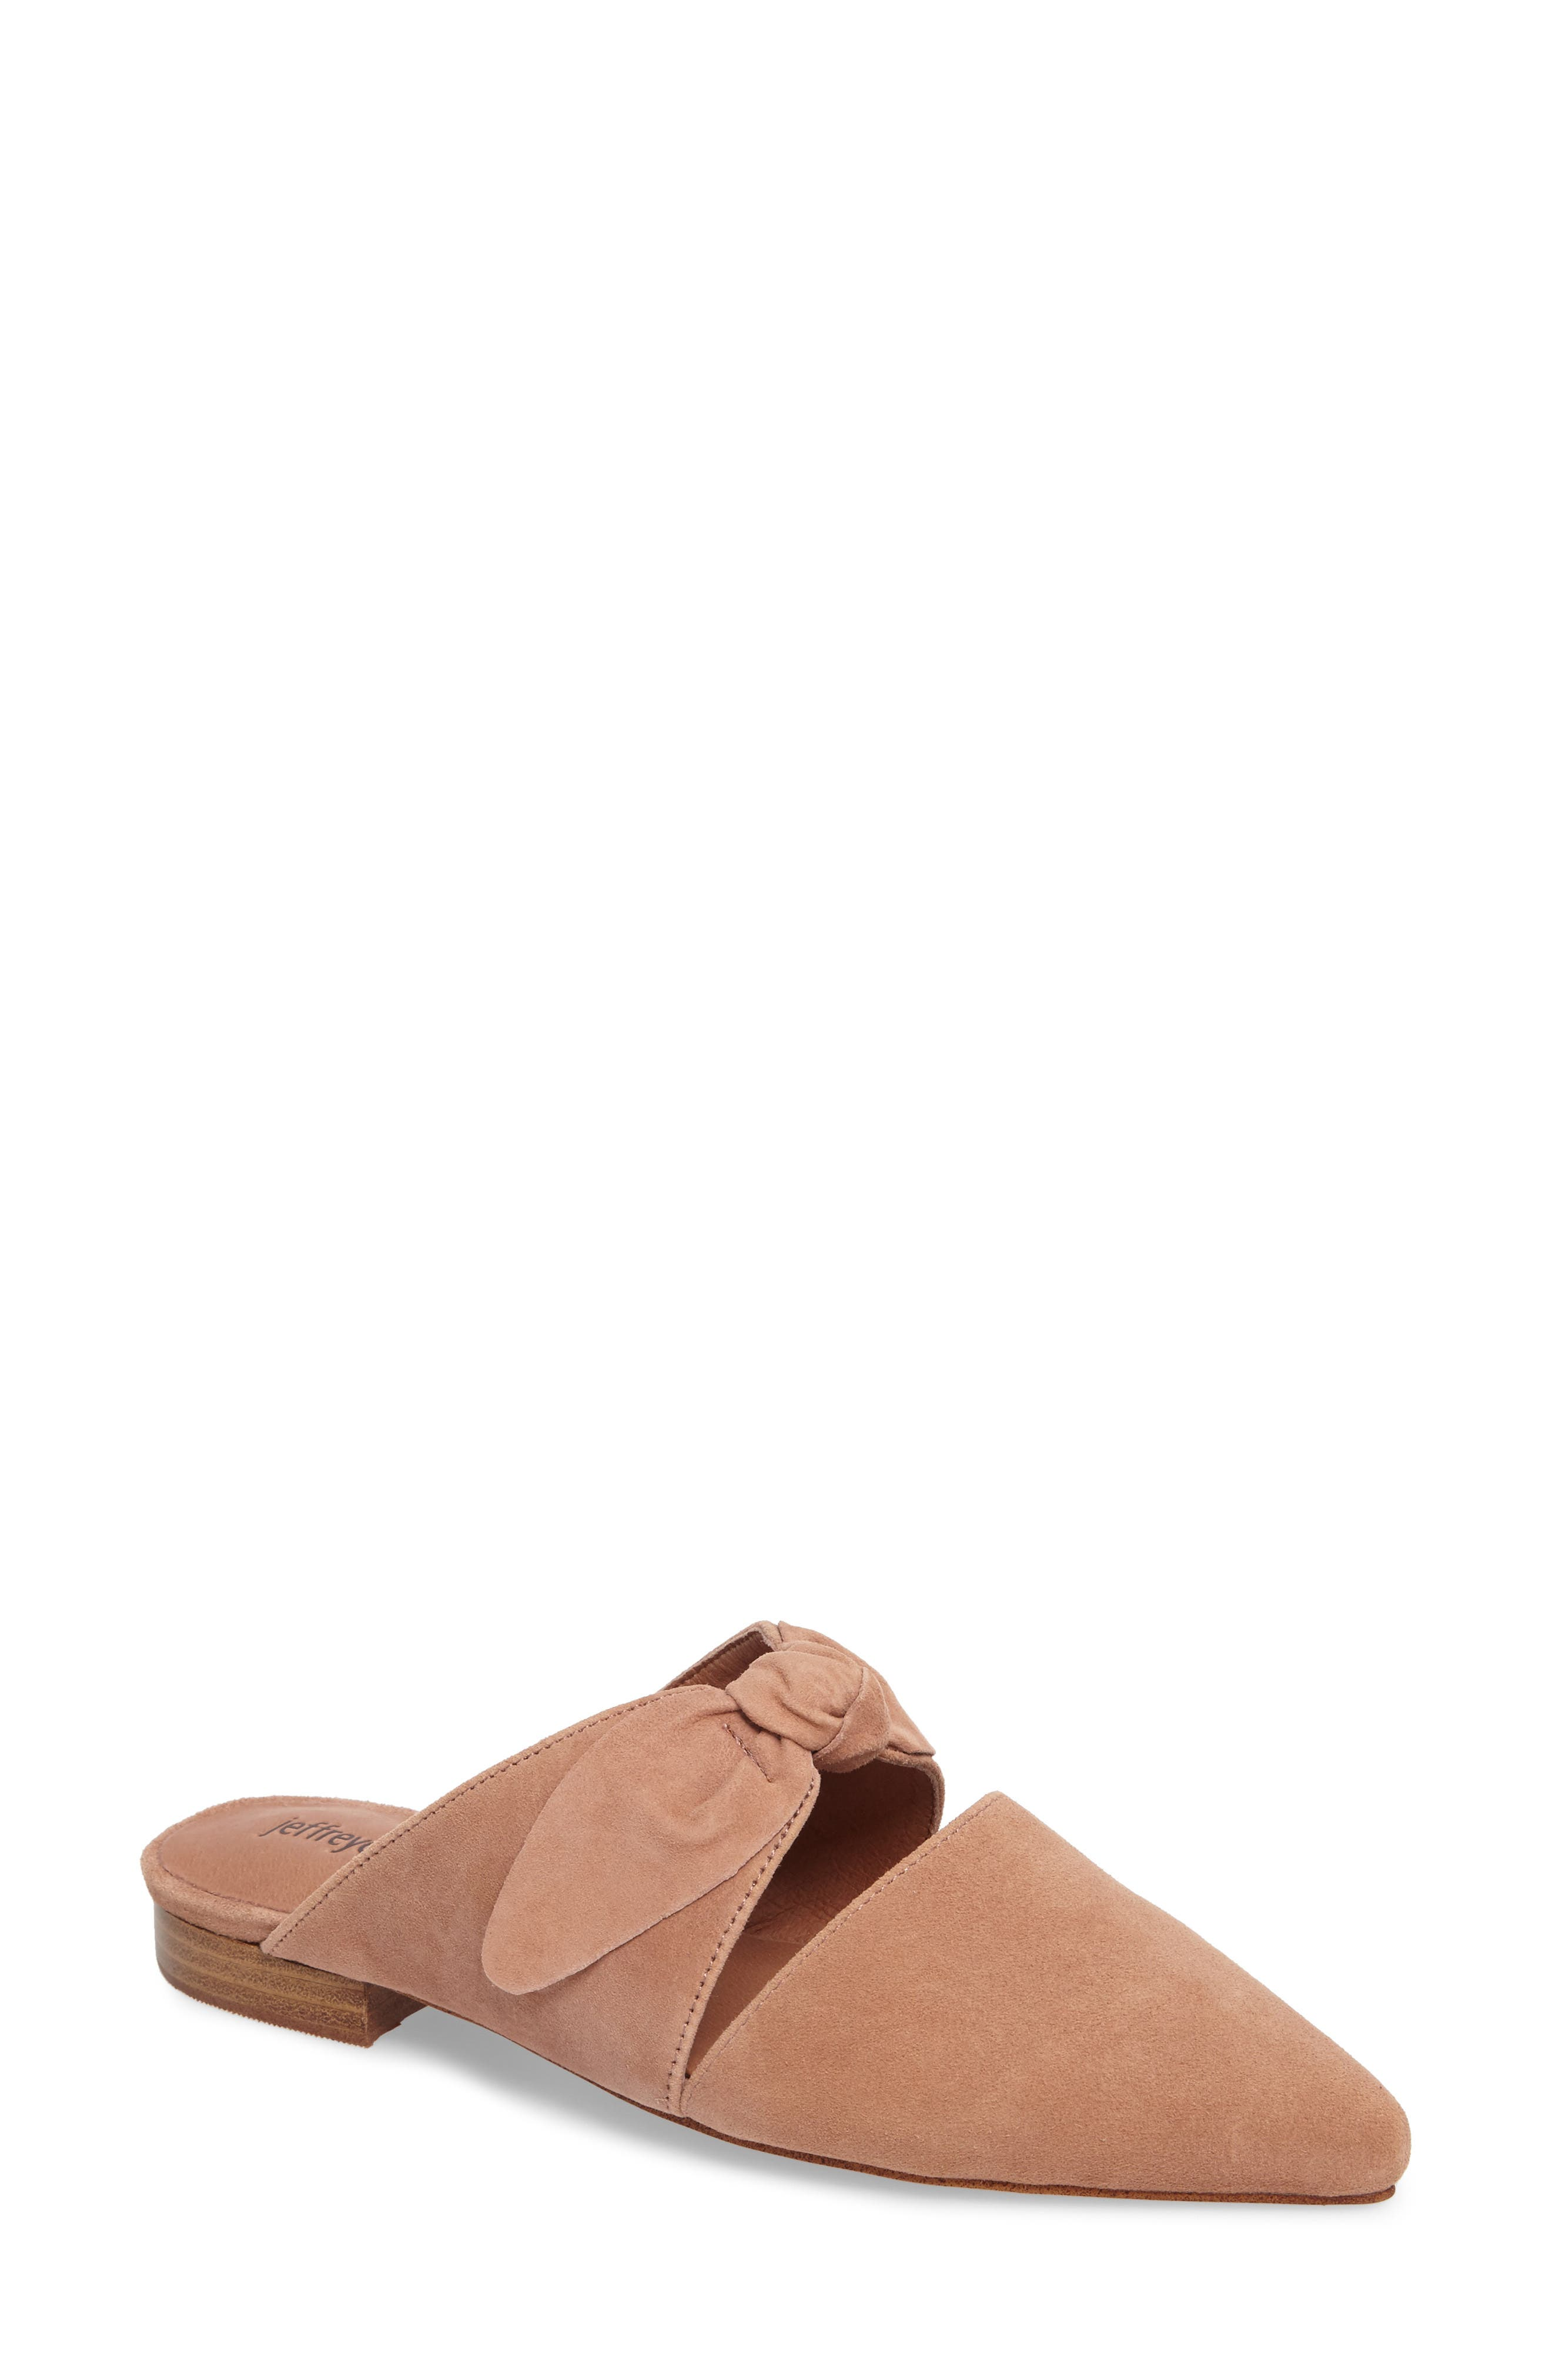 Charlin Bow Mule,                         Main,                         color, Blush Suede